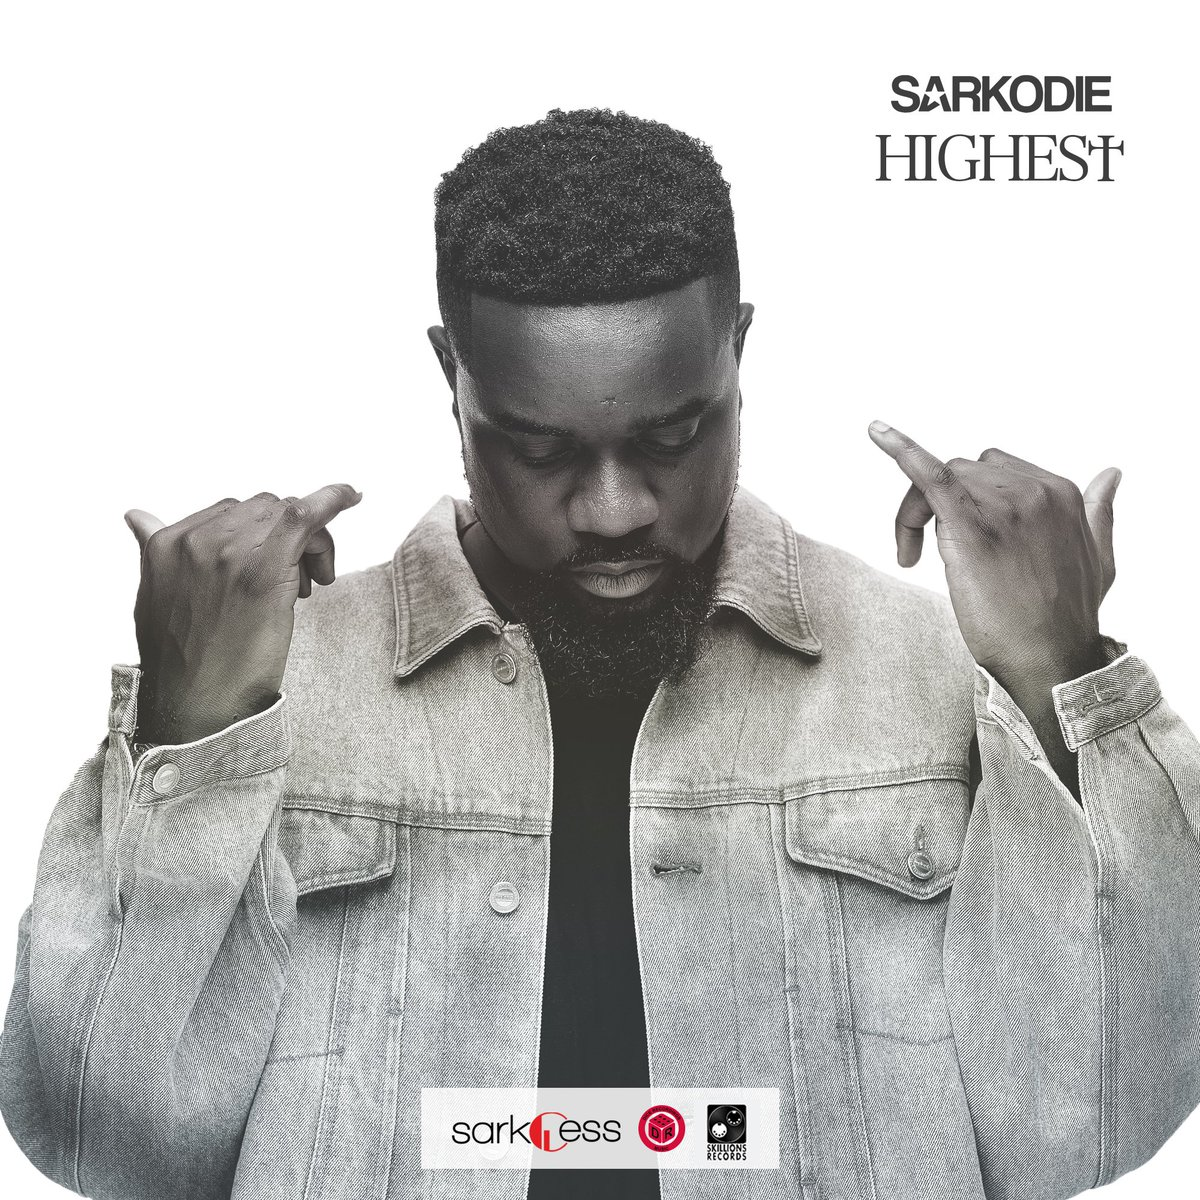 CONFIRMED!!! @sarkodie 's #Highest album to be distributed worldwide by Sony Music UK. #Nydjlive https://t.co/nK16k3oIDd